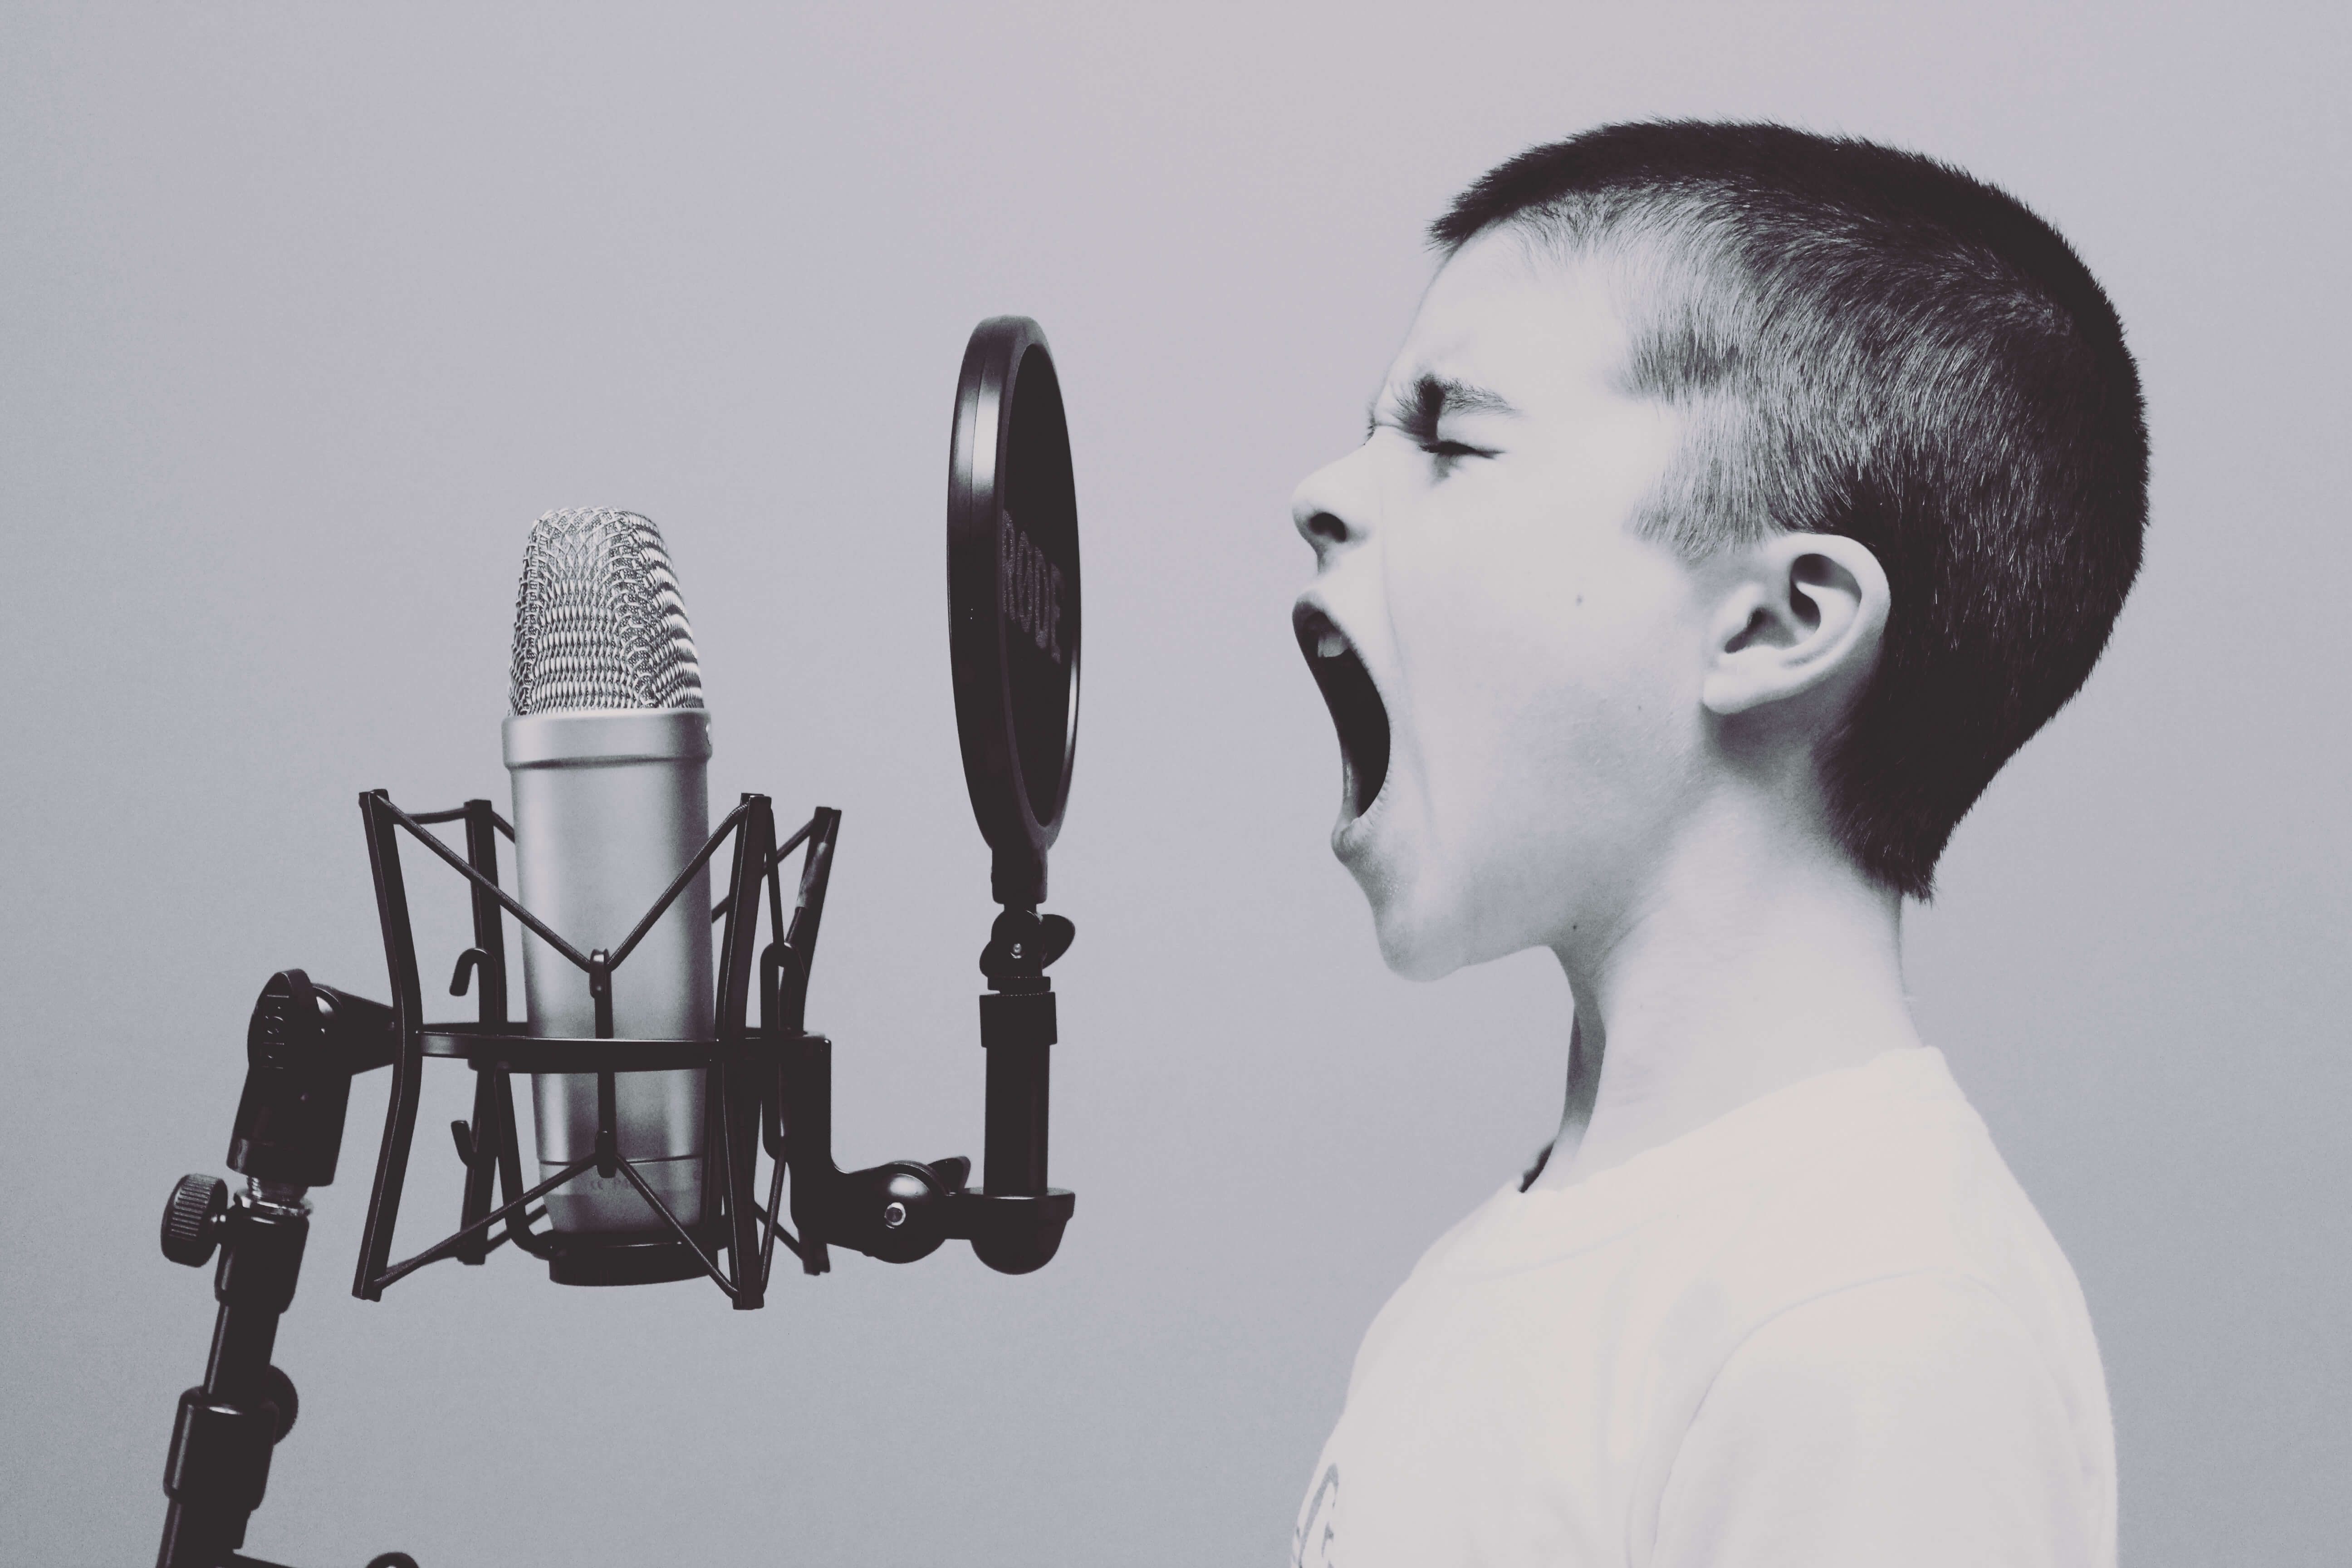 boy shouting to a microphone